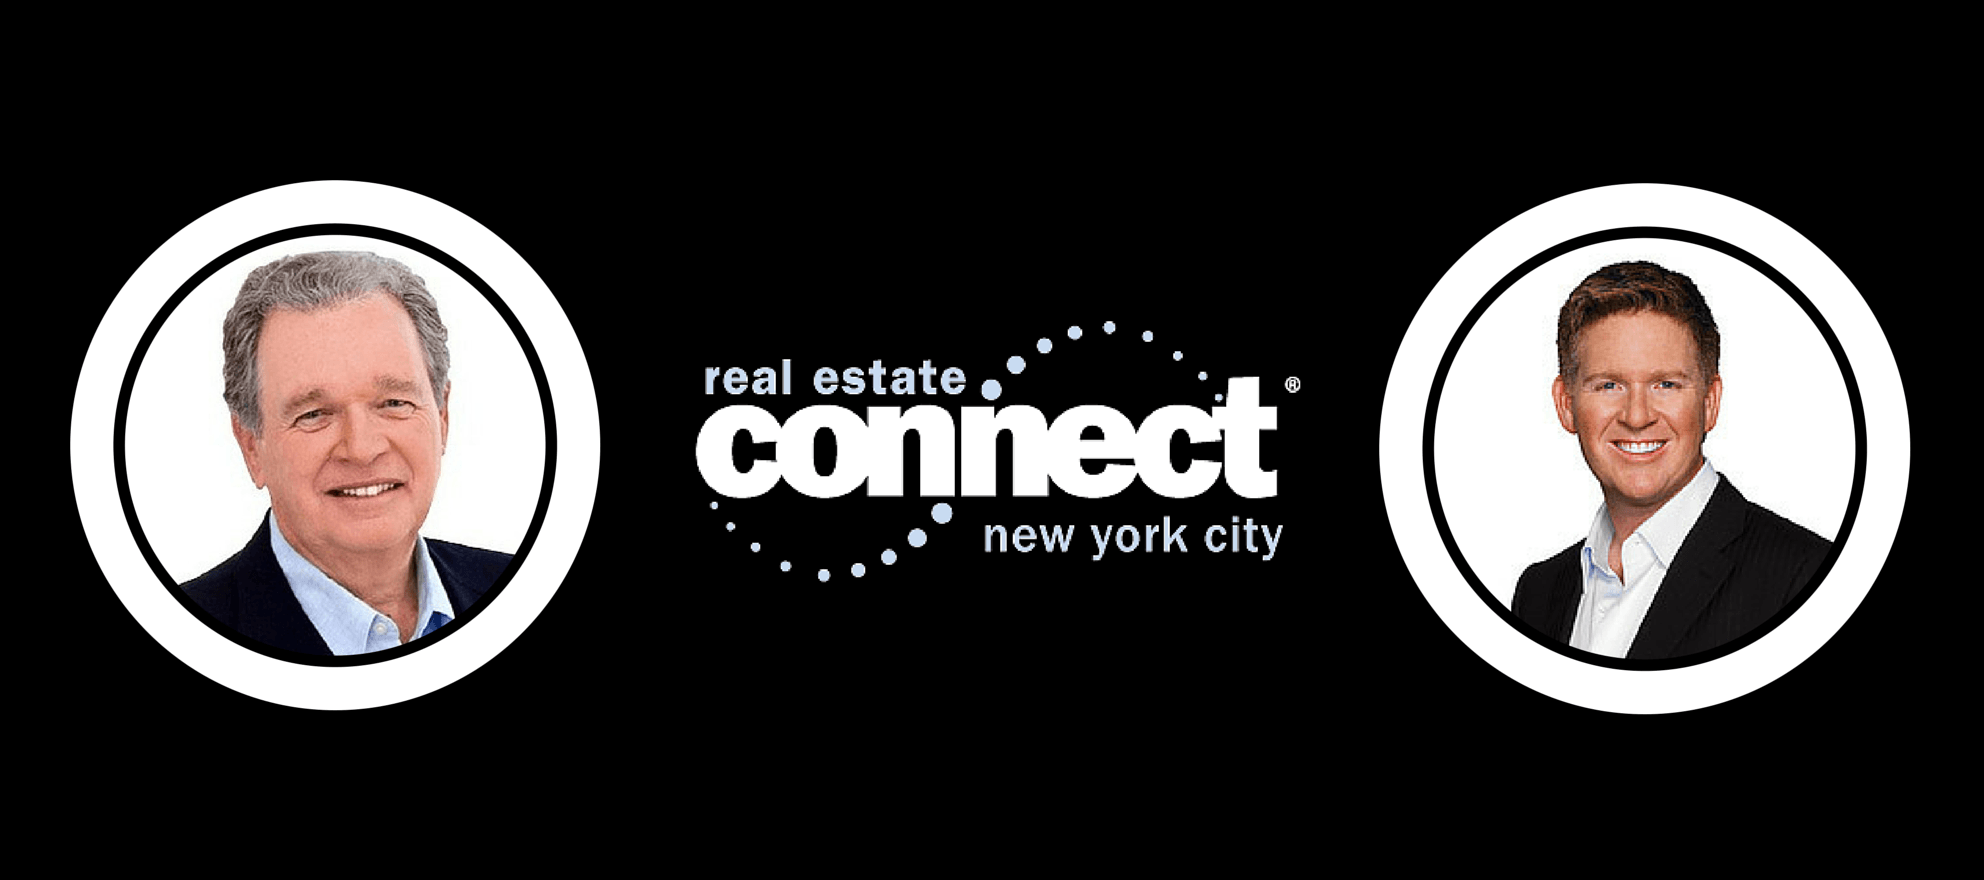 What's the ROI on real estate coaches? Find out at Real Estate Connect NYC 2015